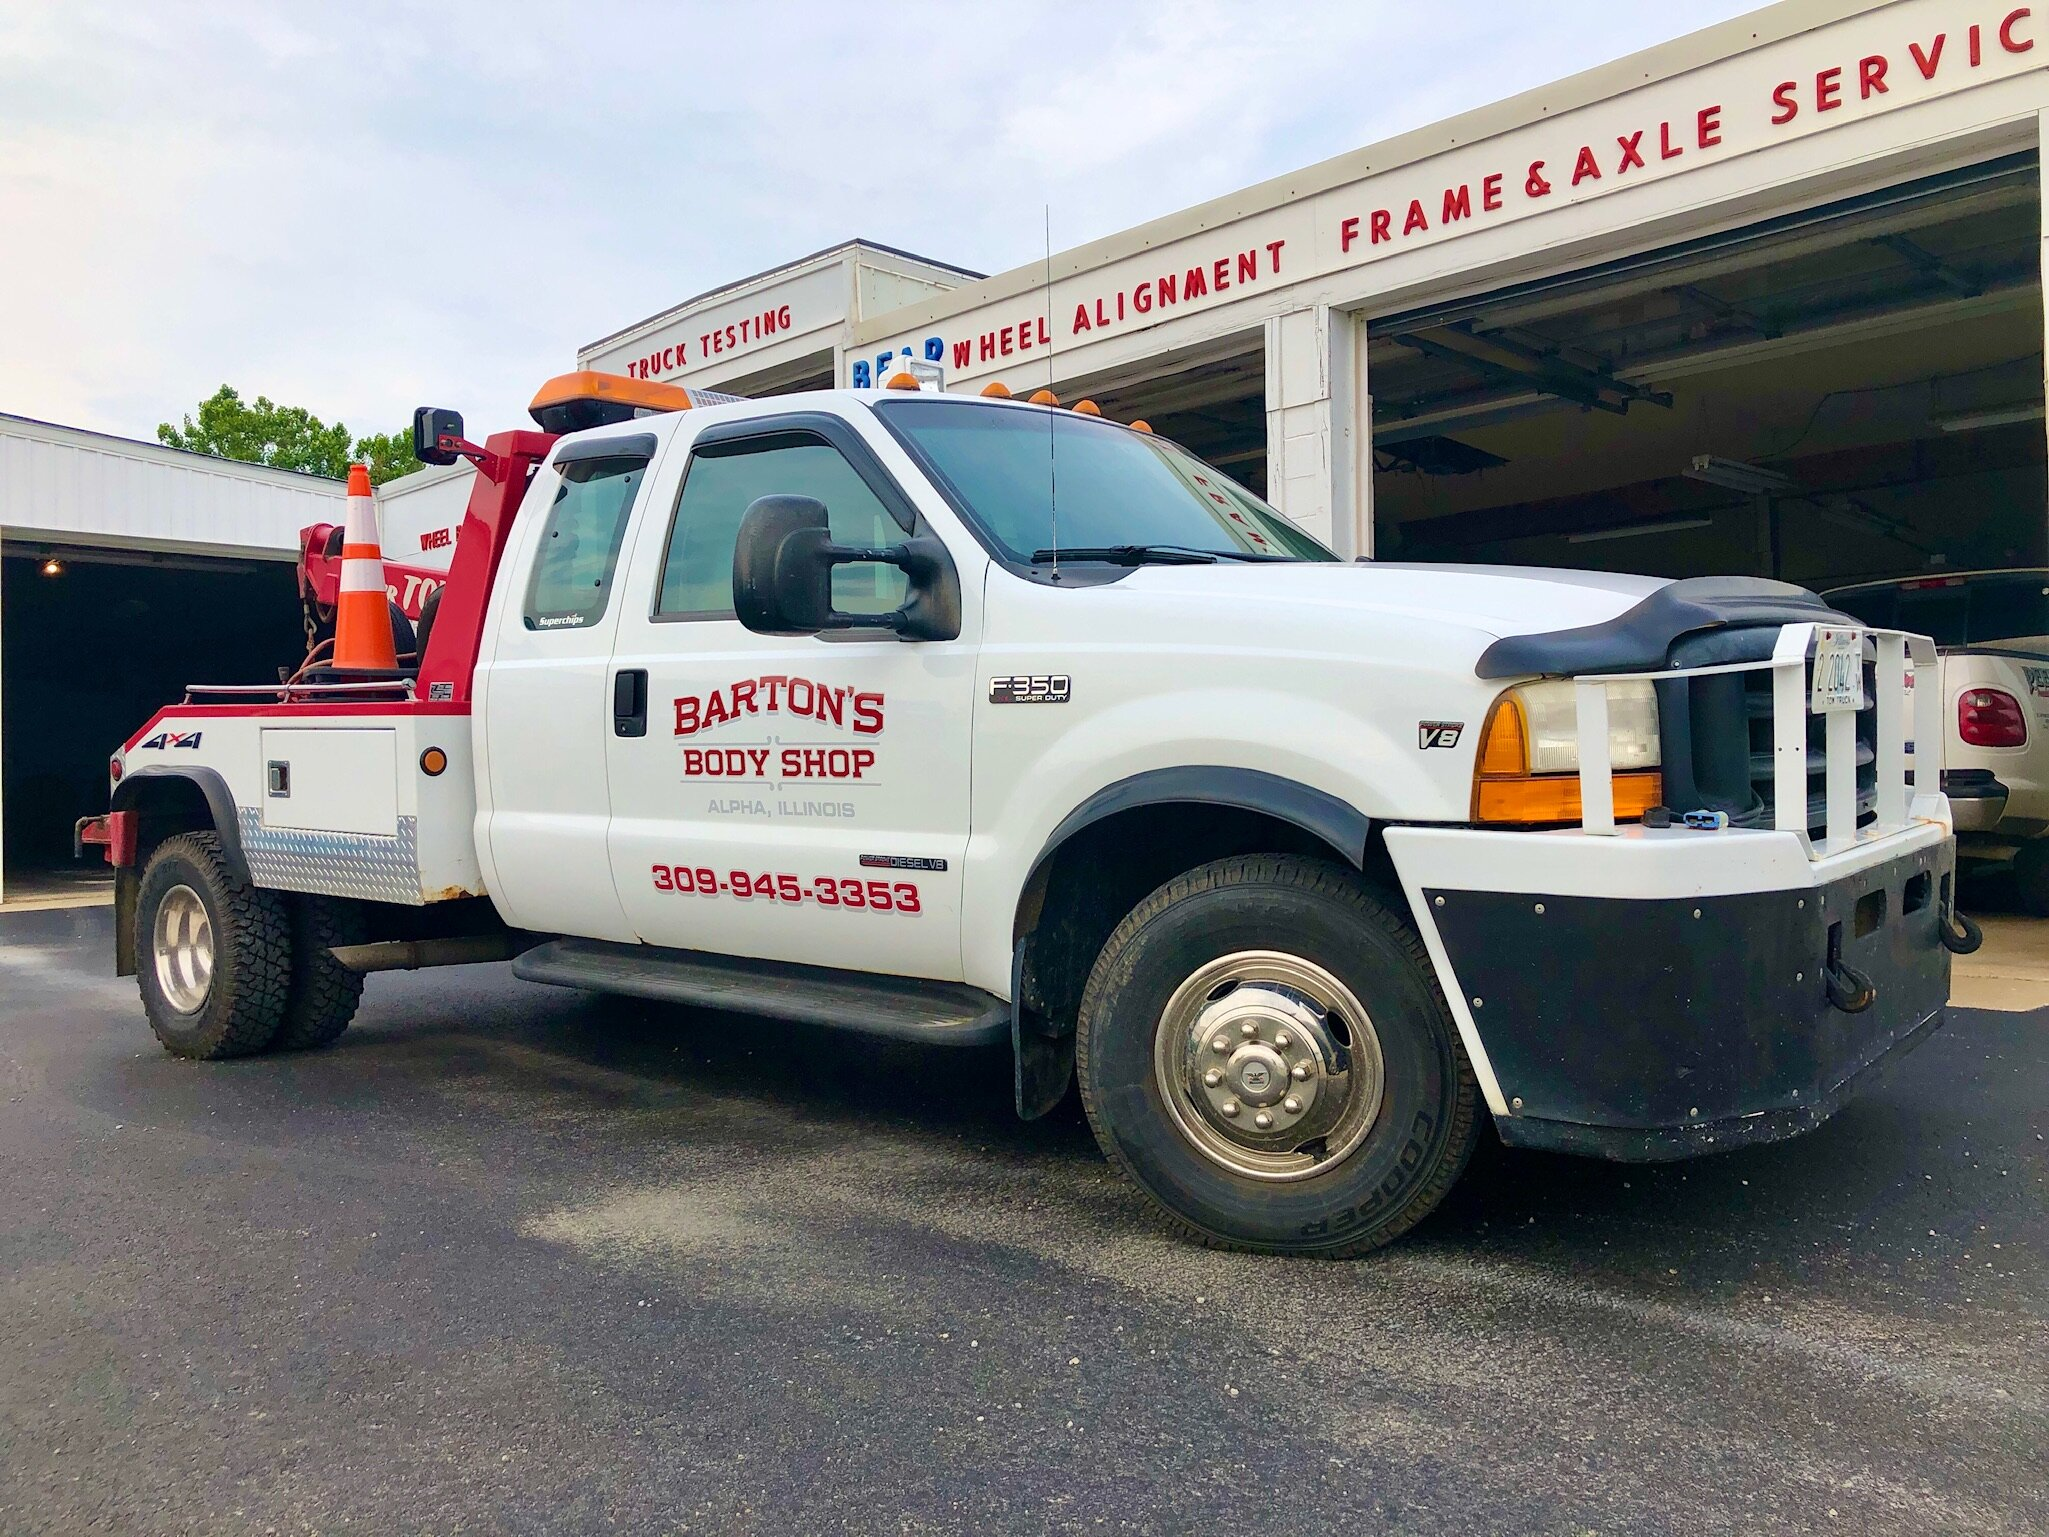 Barton's Body Shop - Tow Truck